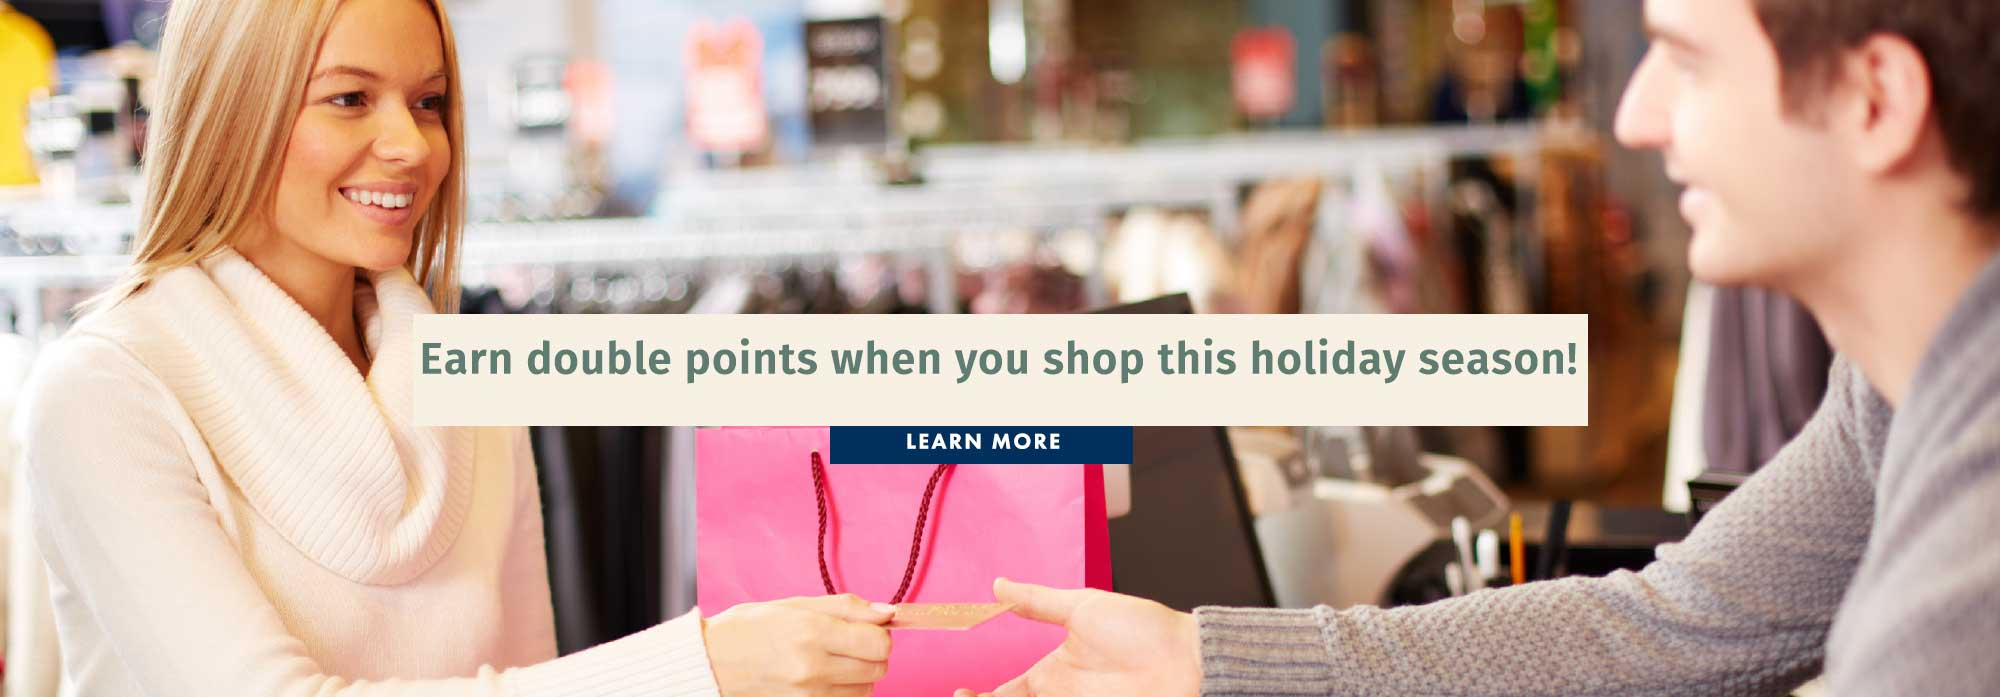 Earn double points when you shop this holiday season!